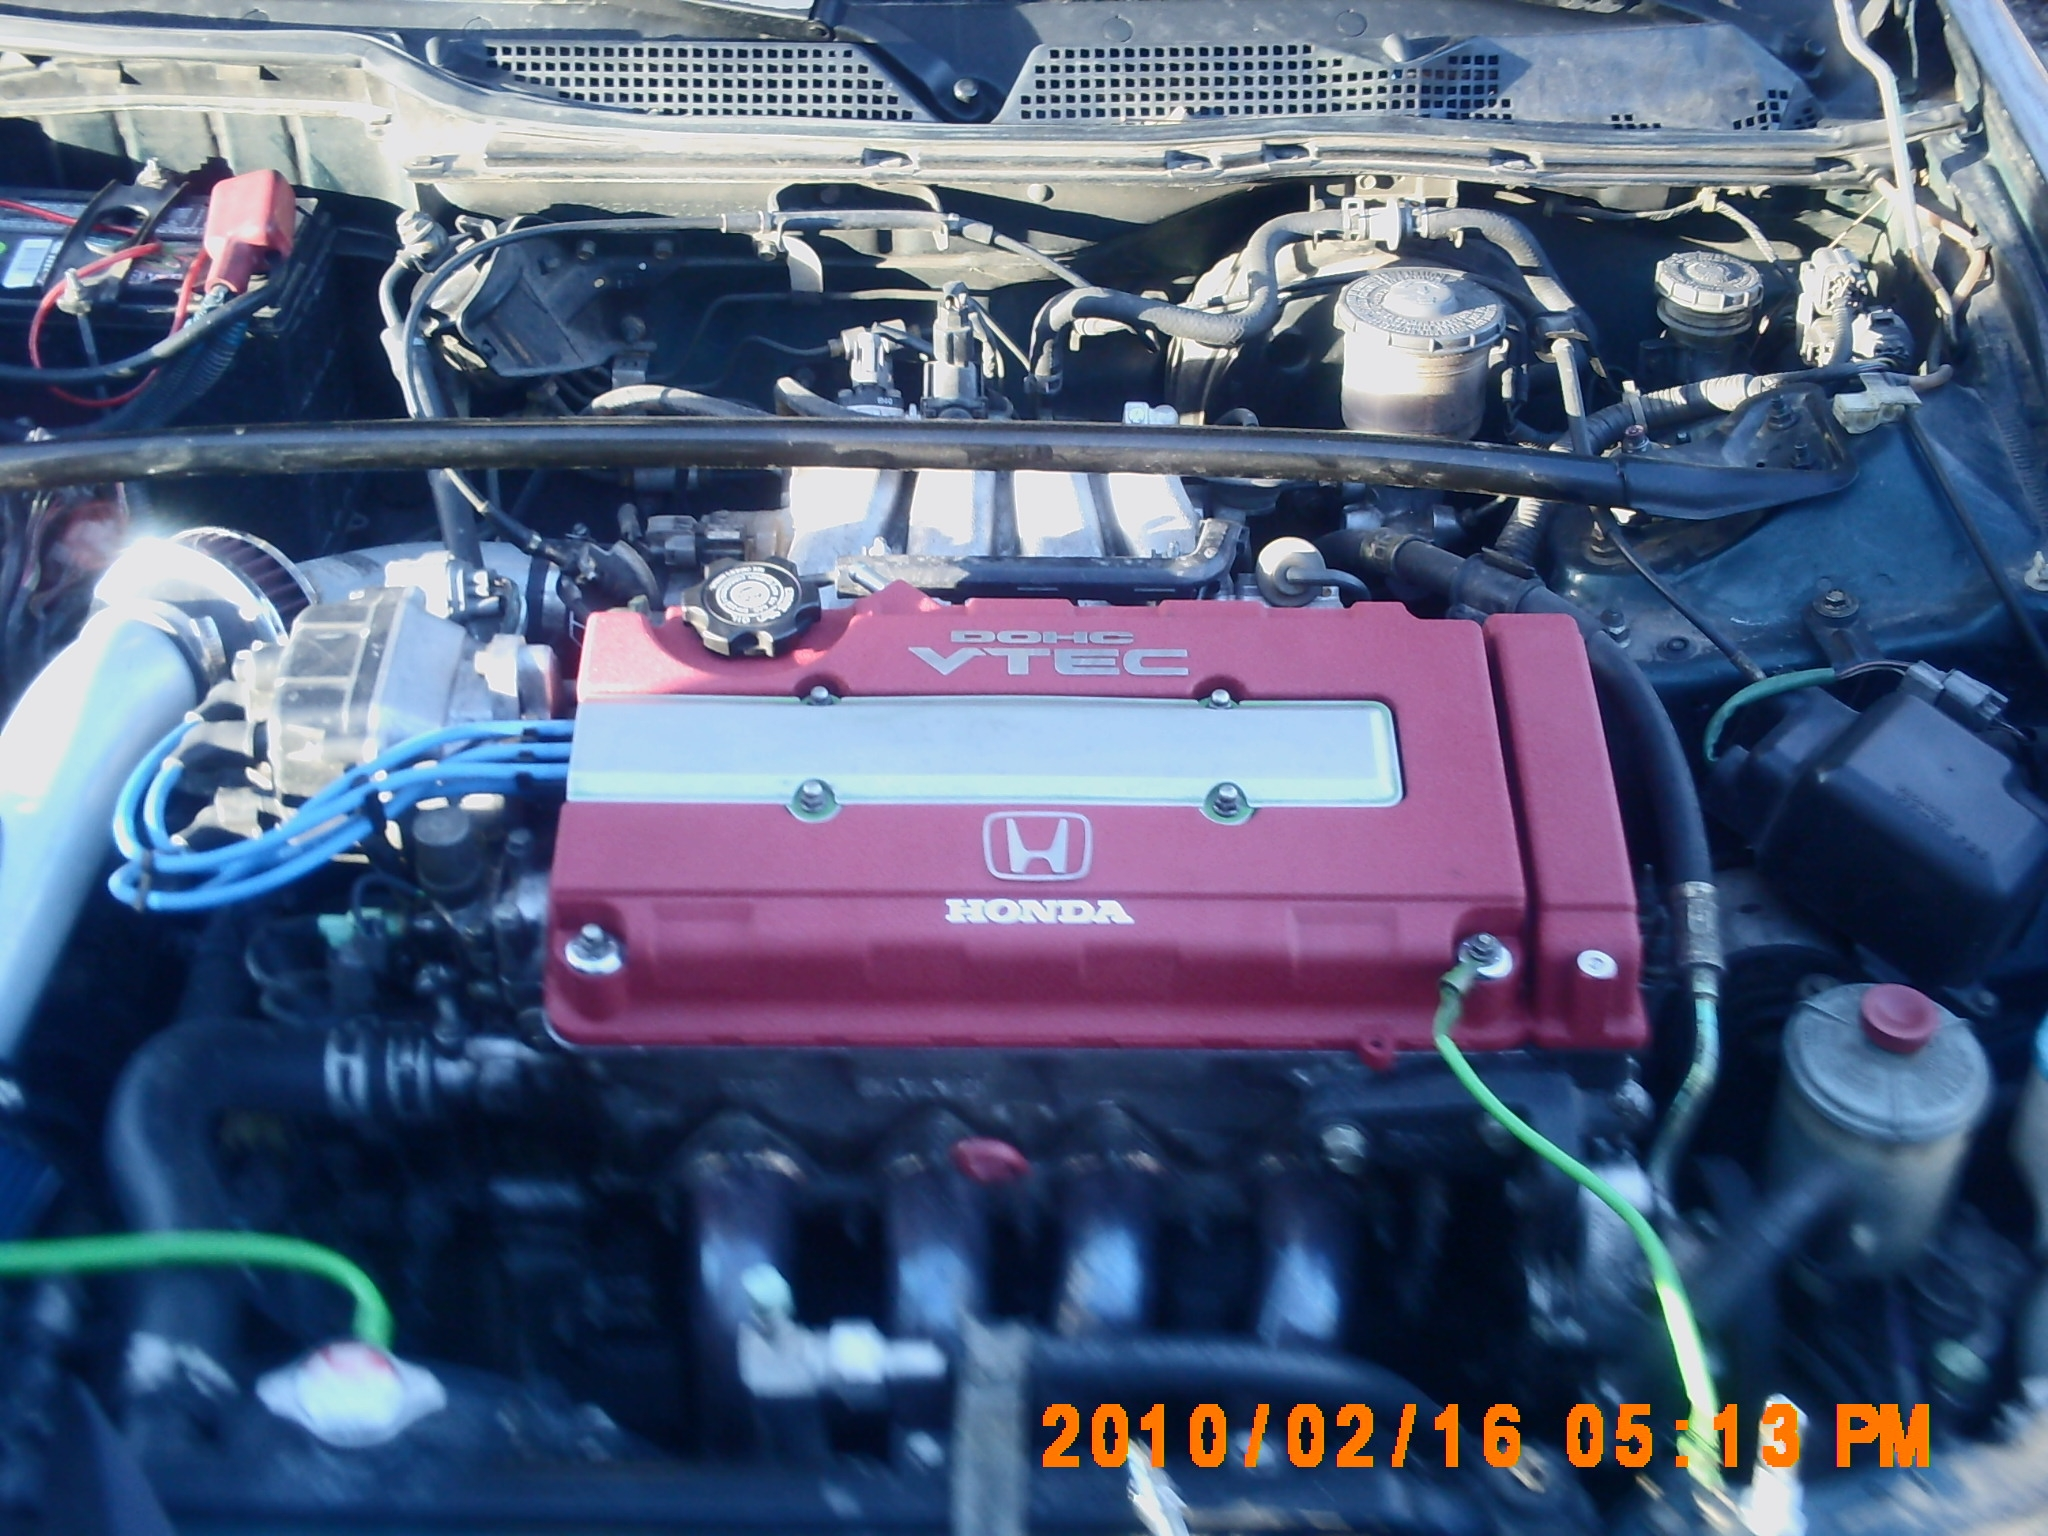 Another team_oasis 1996 Acura Integra post... - 13310623